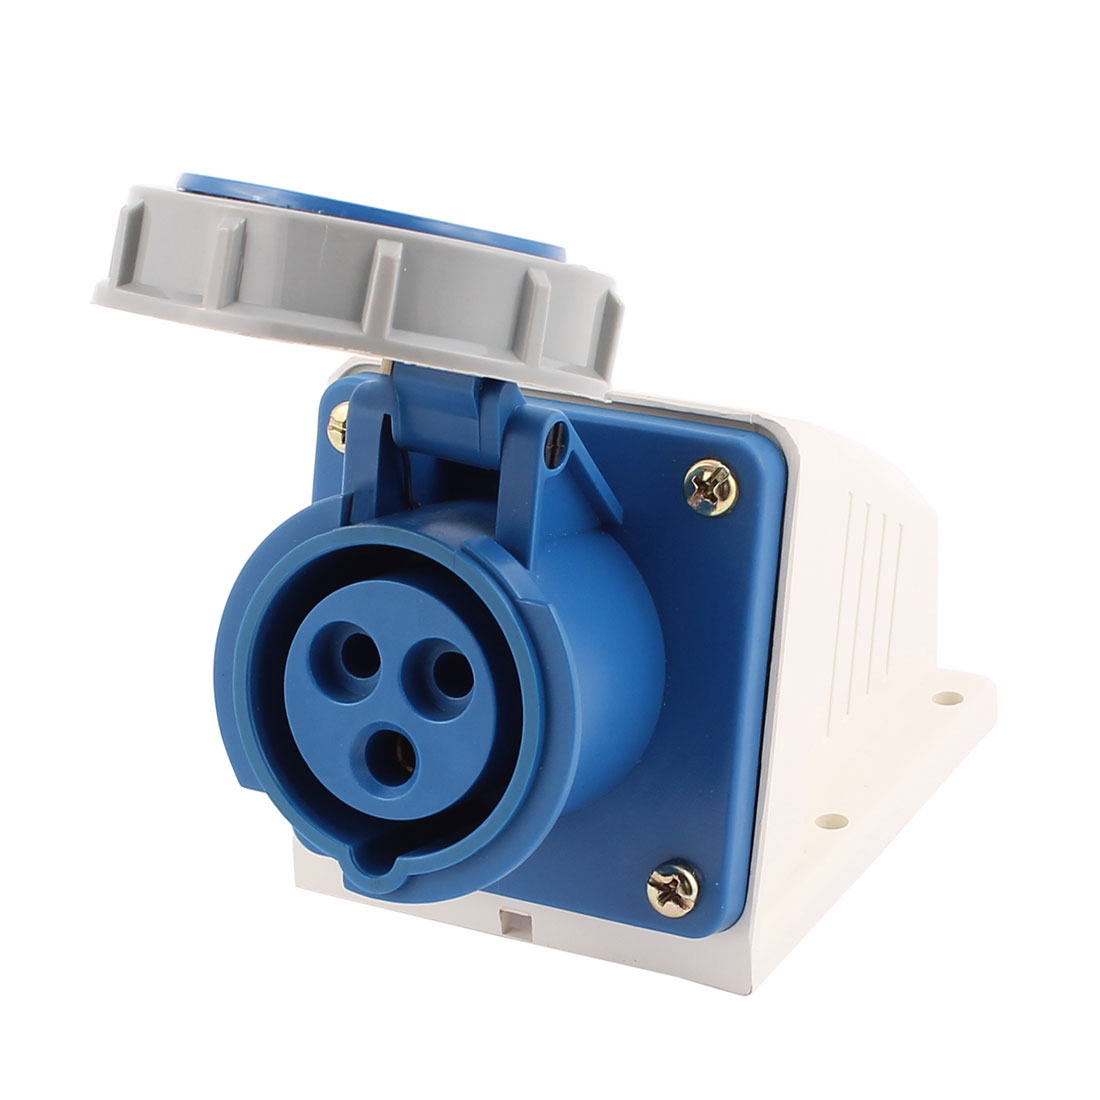 AC 200V-250V 16A IP67 2P+E 3P Female Industrial Caravan Socket